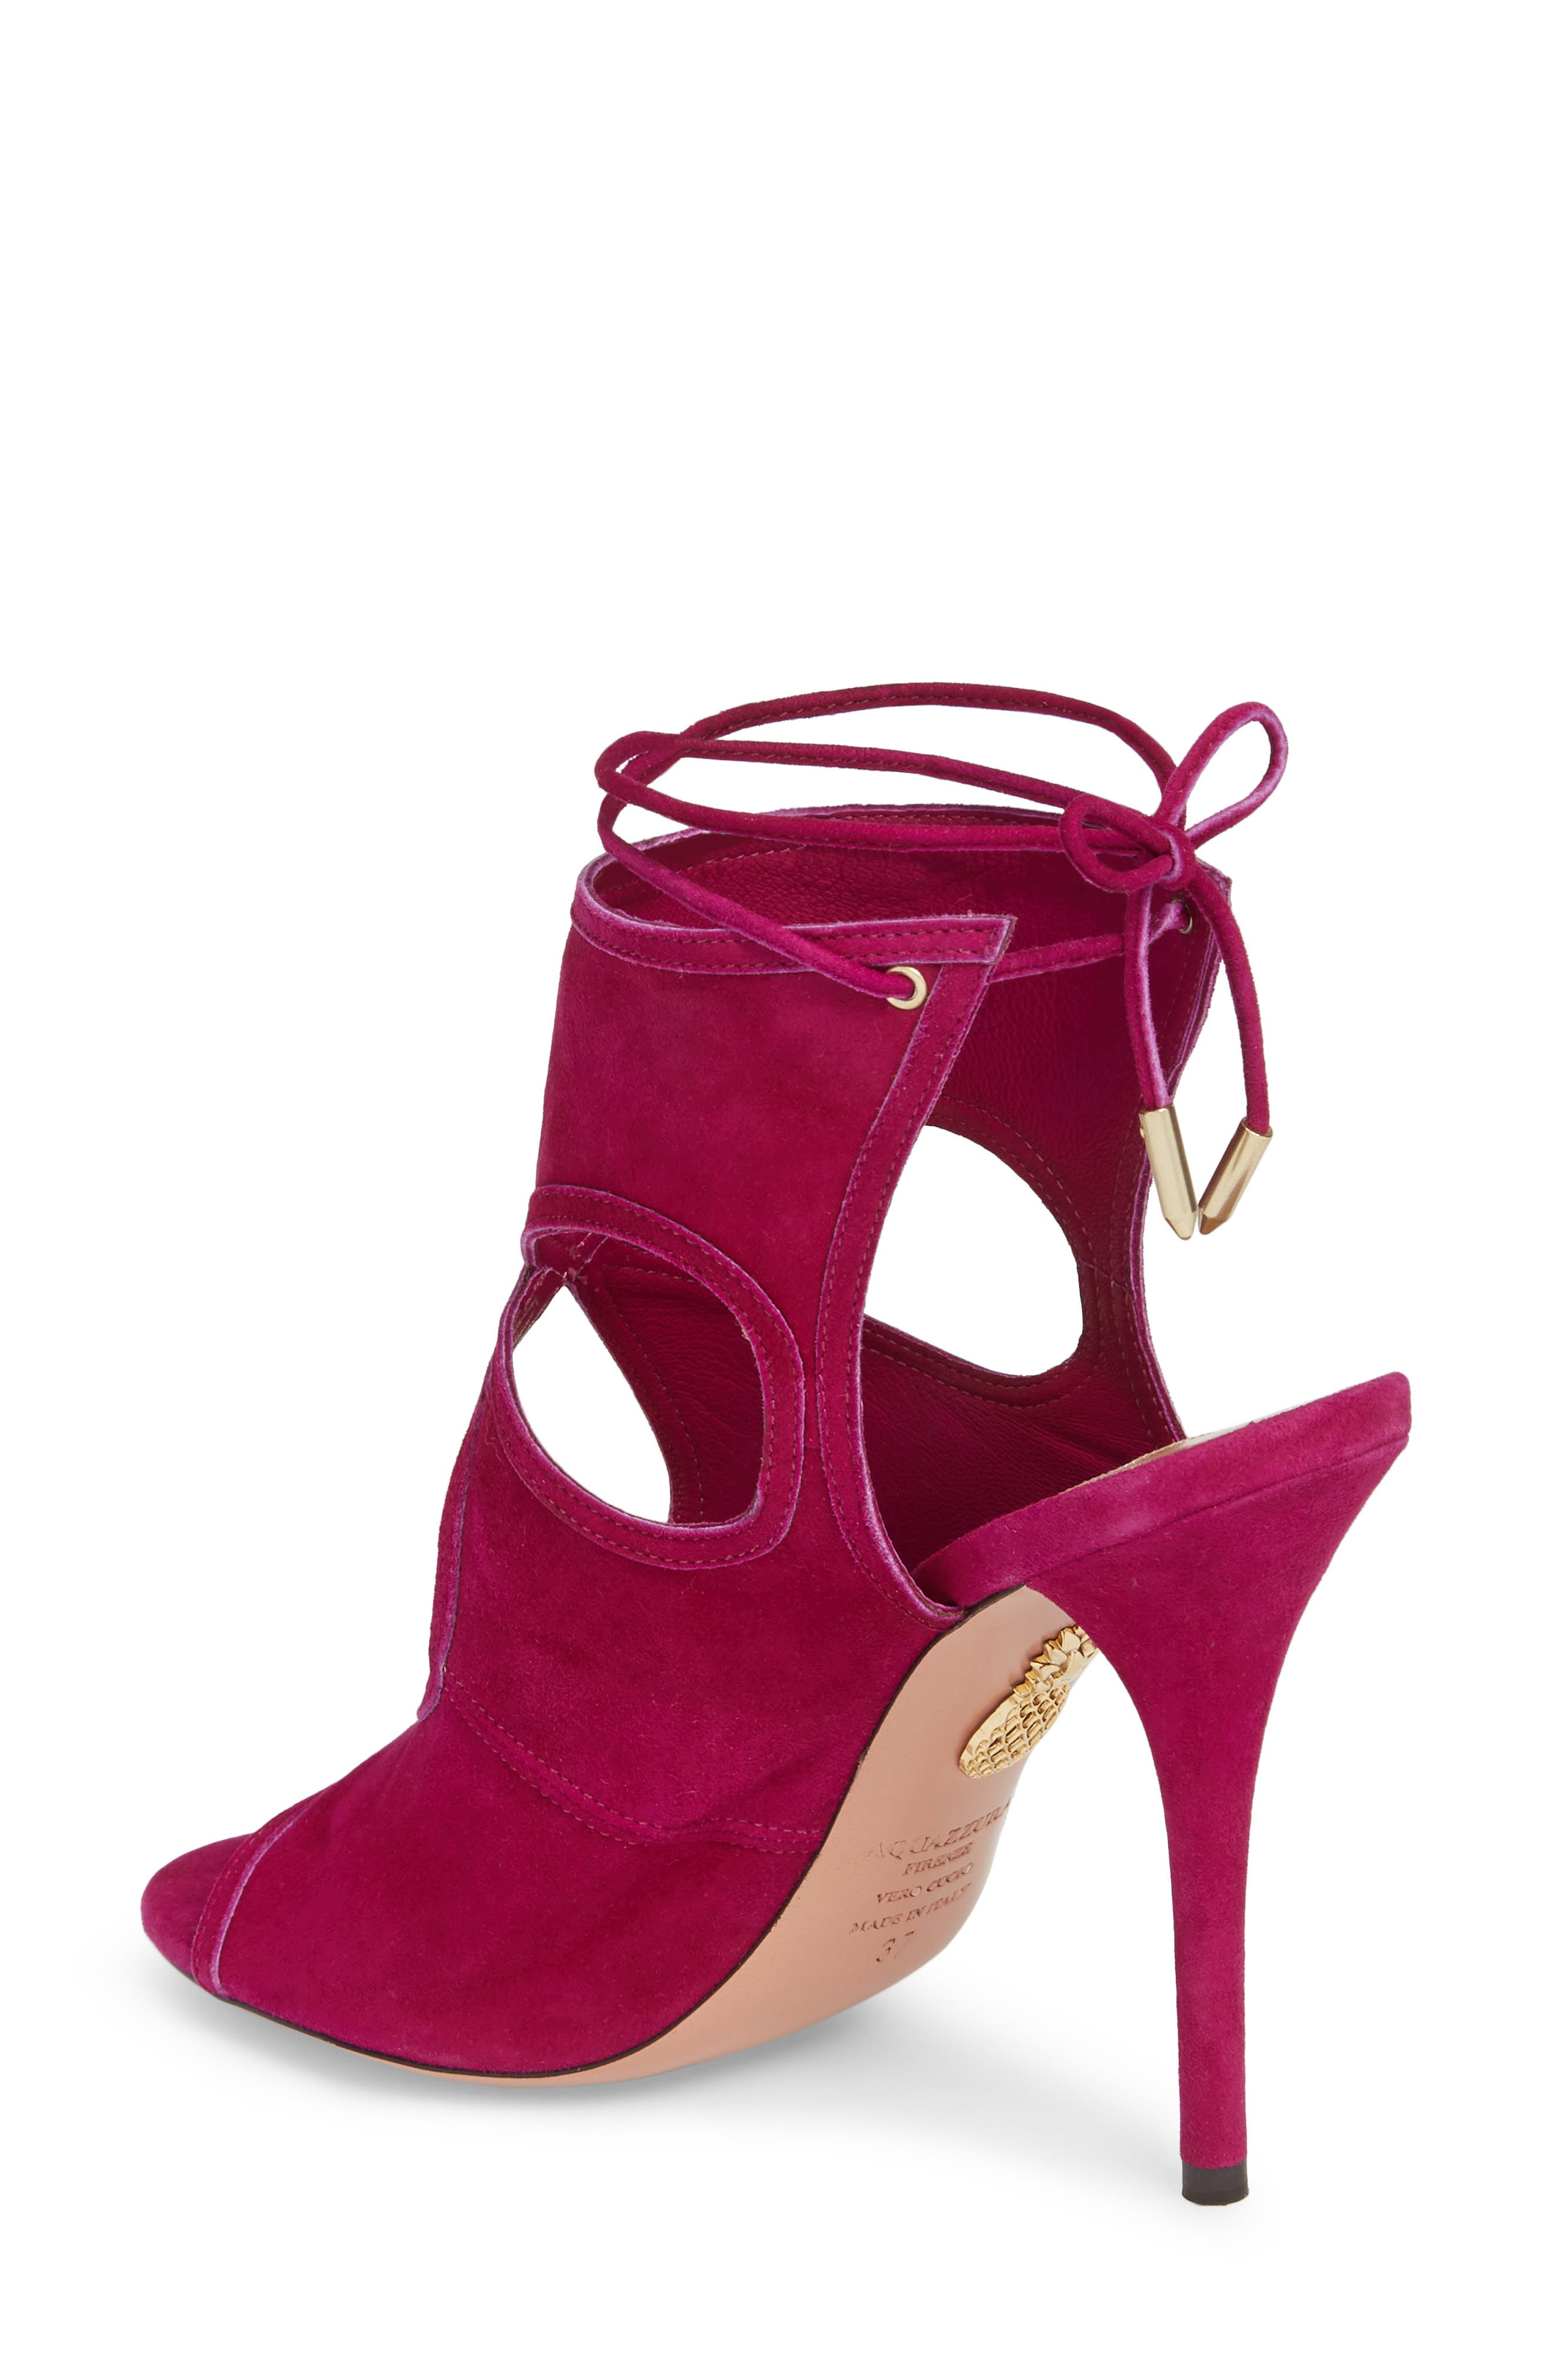 Sexy Thing Ankle Shield Sandal,                             Alternate thumbnail 2, color,                             Iris